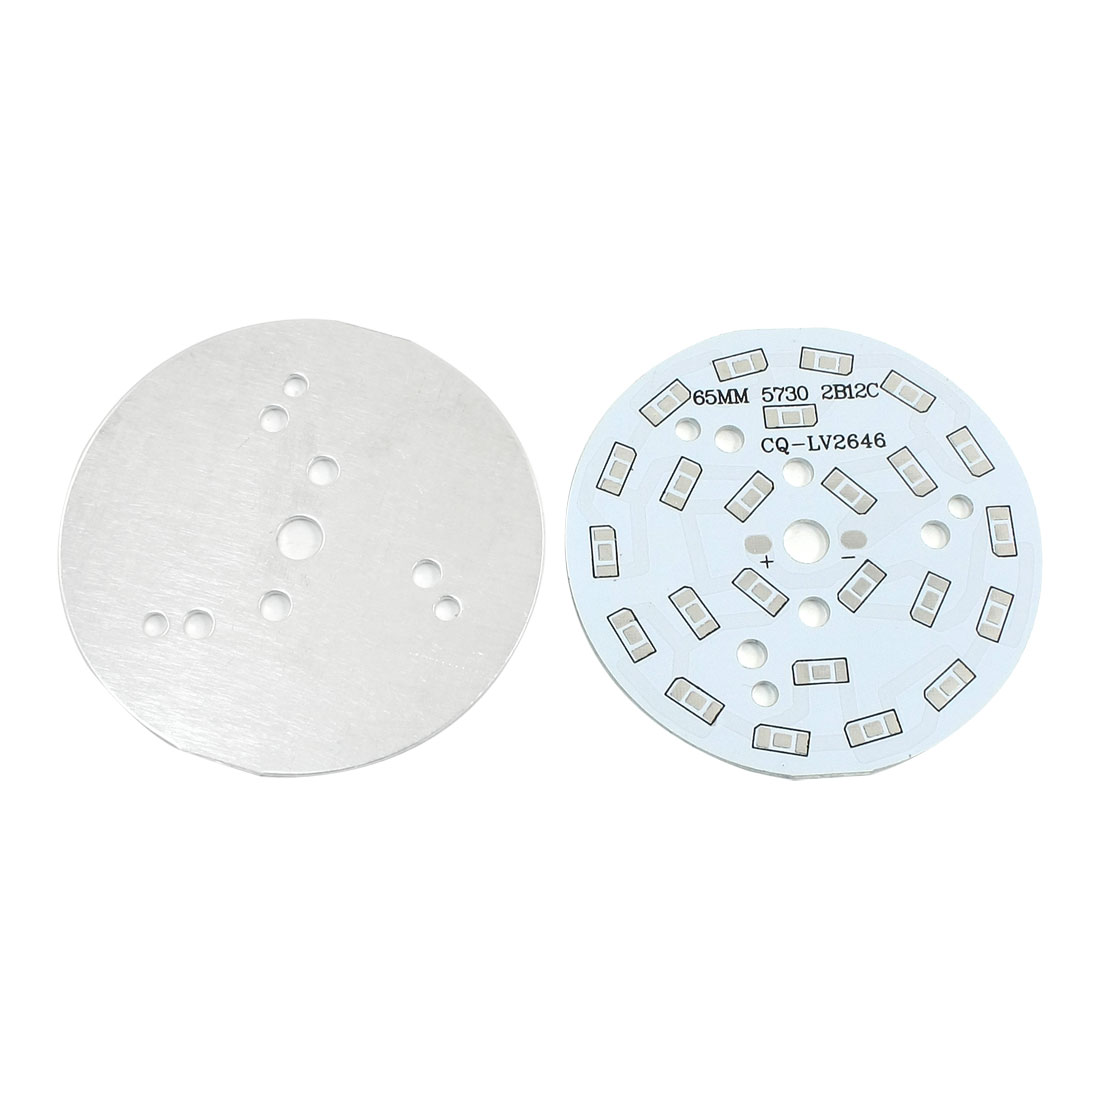 2Pcs 24 x 1/2W 5730 SMD LED High Power DIY Circle Aluminum PCB Circuit Board 65mm Diameter